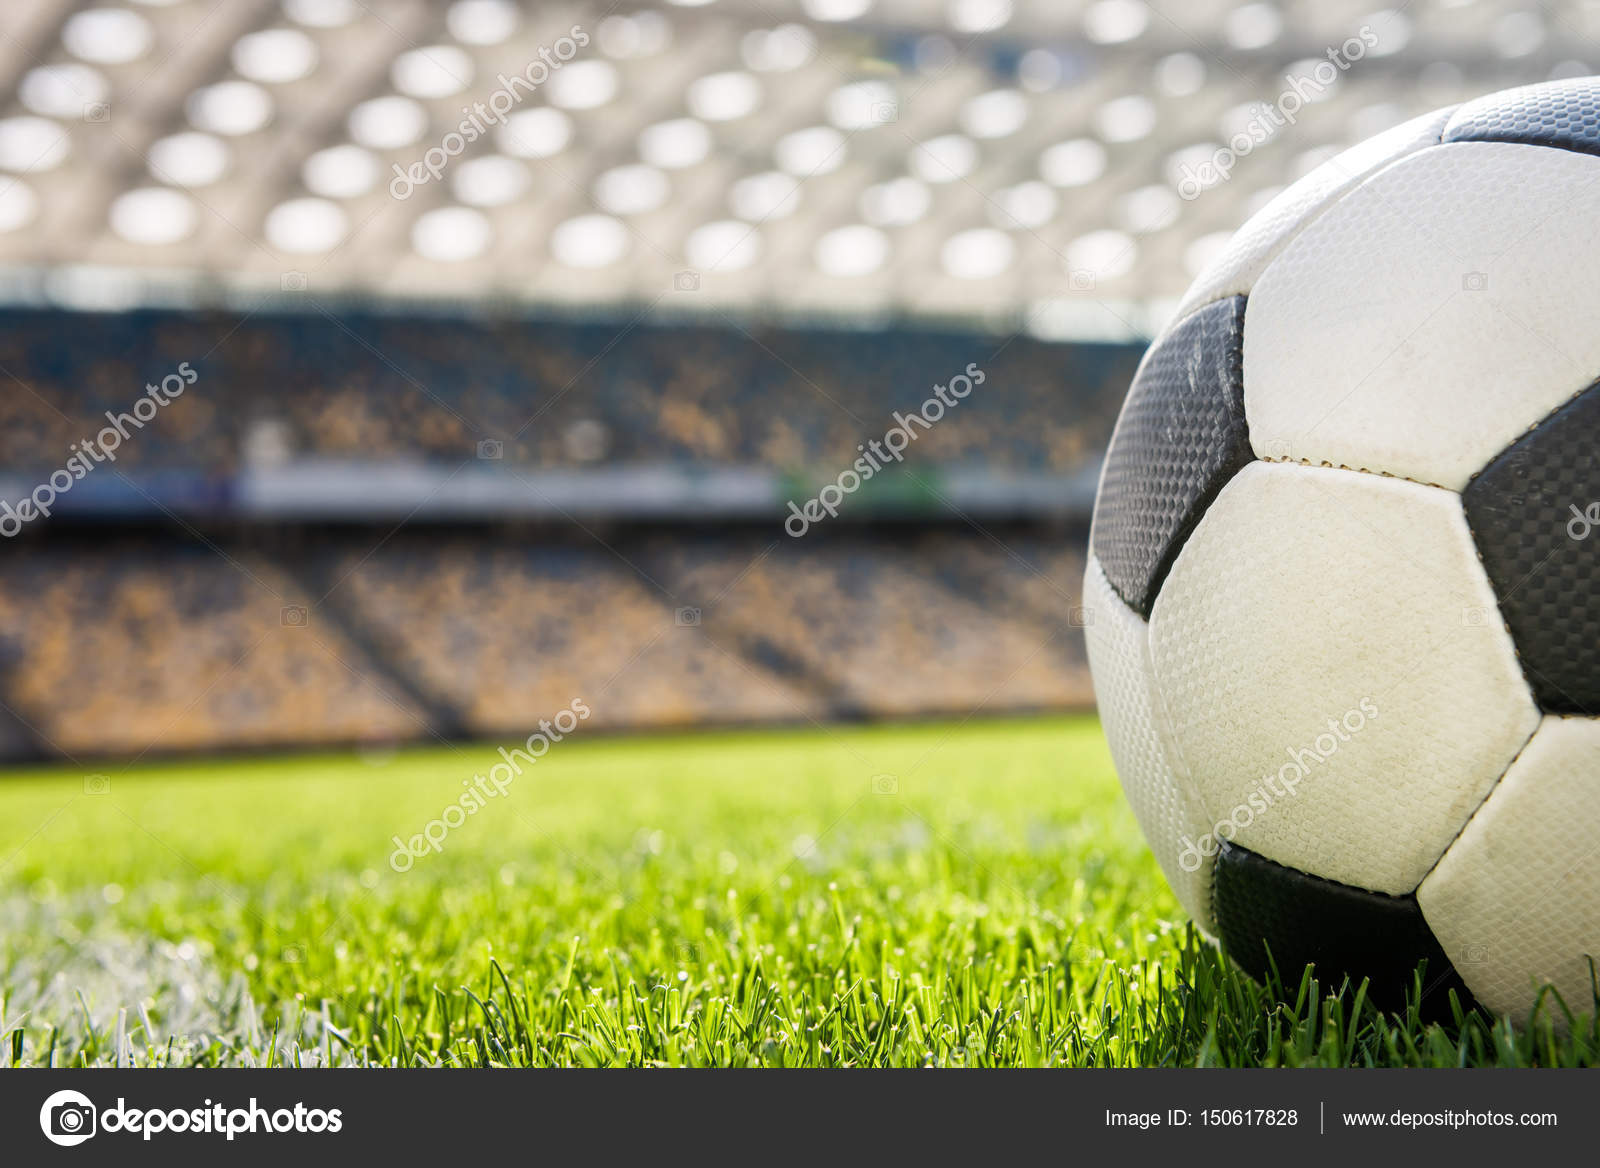 Football Pictures Images Stock Photos Depositphotos